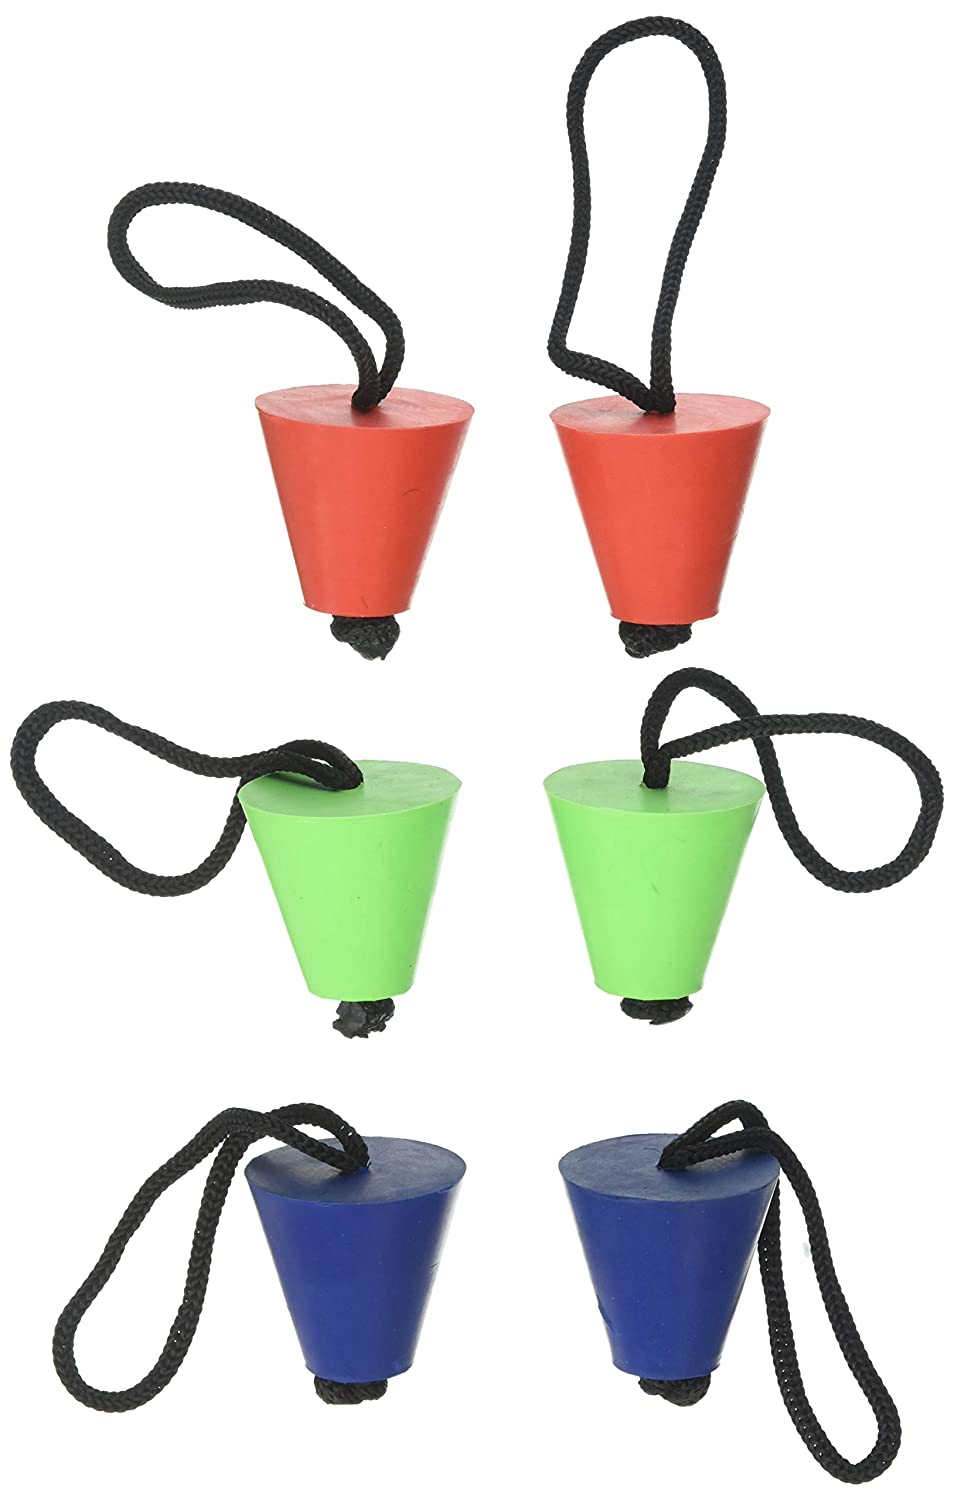 Renewed 4 Pack Perception Scupper Hole Plugs for Kayaks